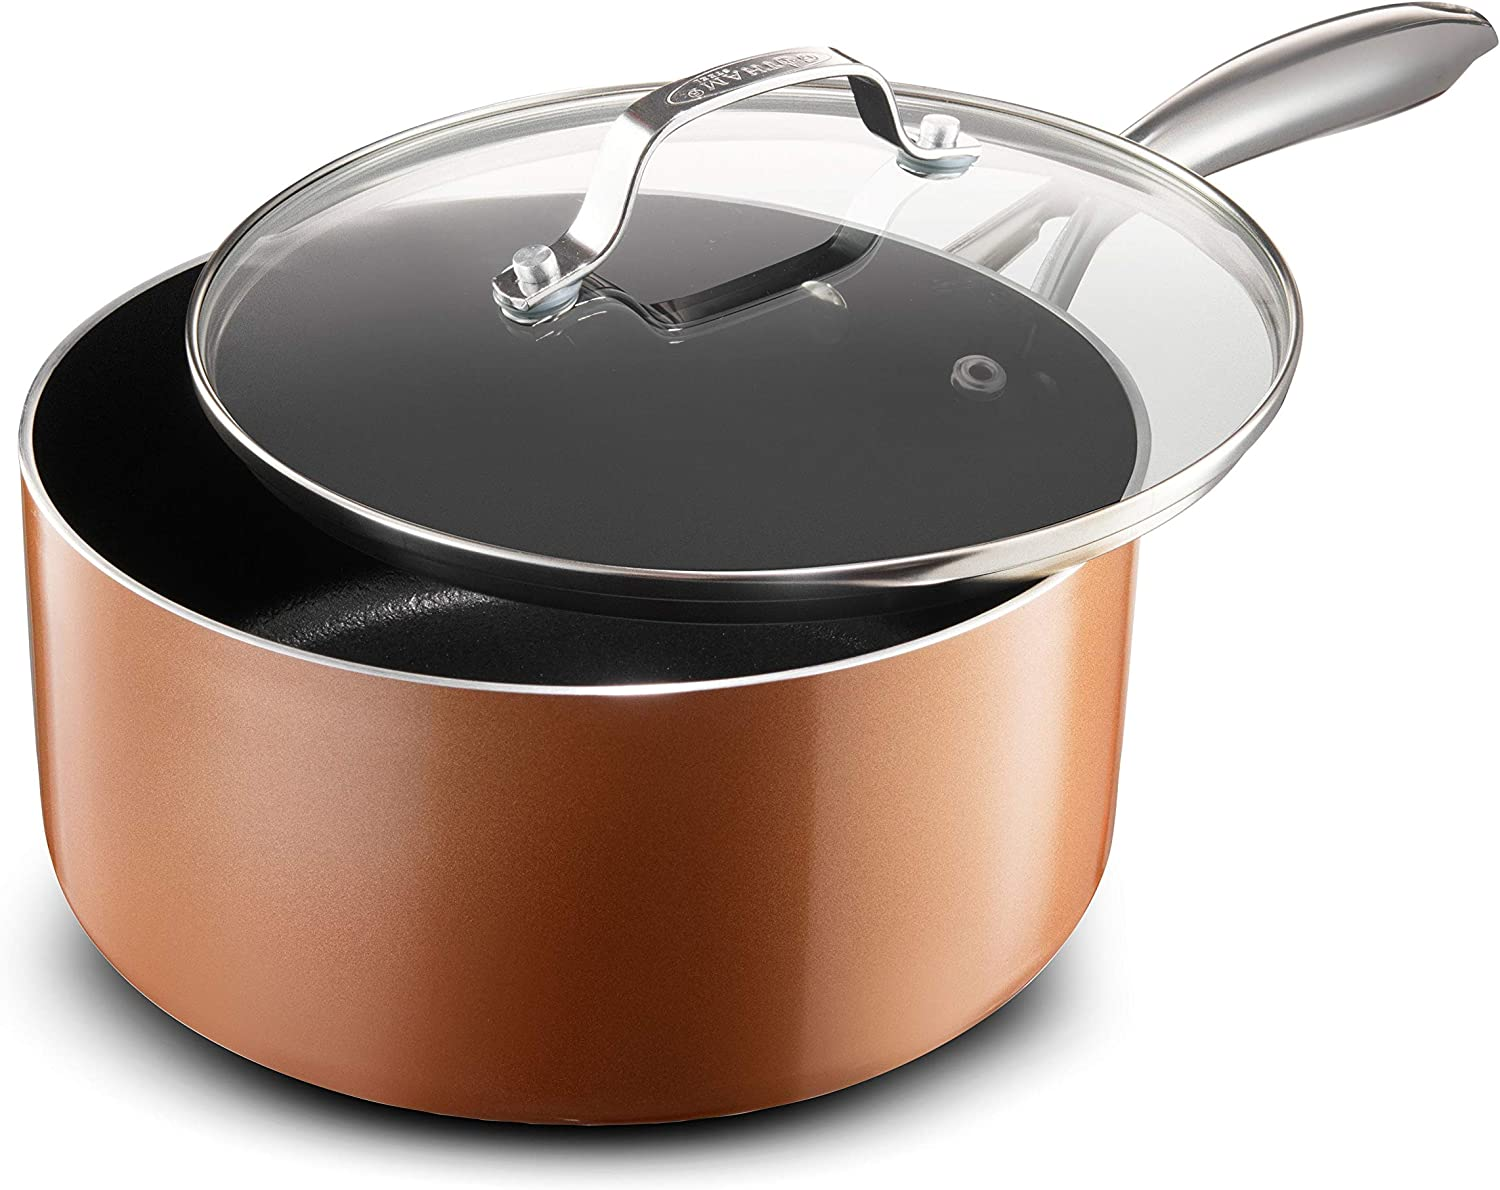 Gotham Steel Copper Cast 2.5 Quart Saucepan with Ultra Nonstick & Durable Mineral Derived & Diamond Reinforced Surface, Stay Cool Handles & Tempered Glass Lid, Oven & Dishwasher Safe, 100% PFOA Free